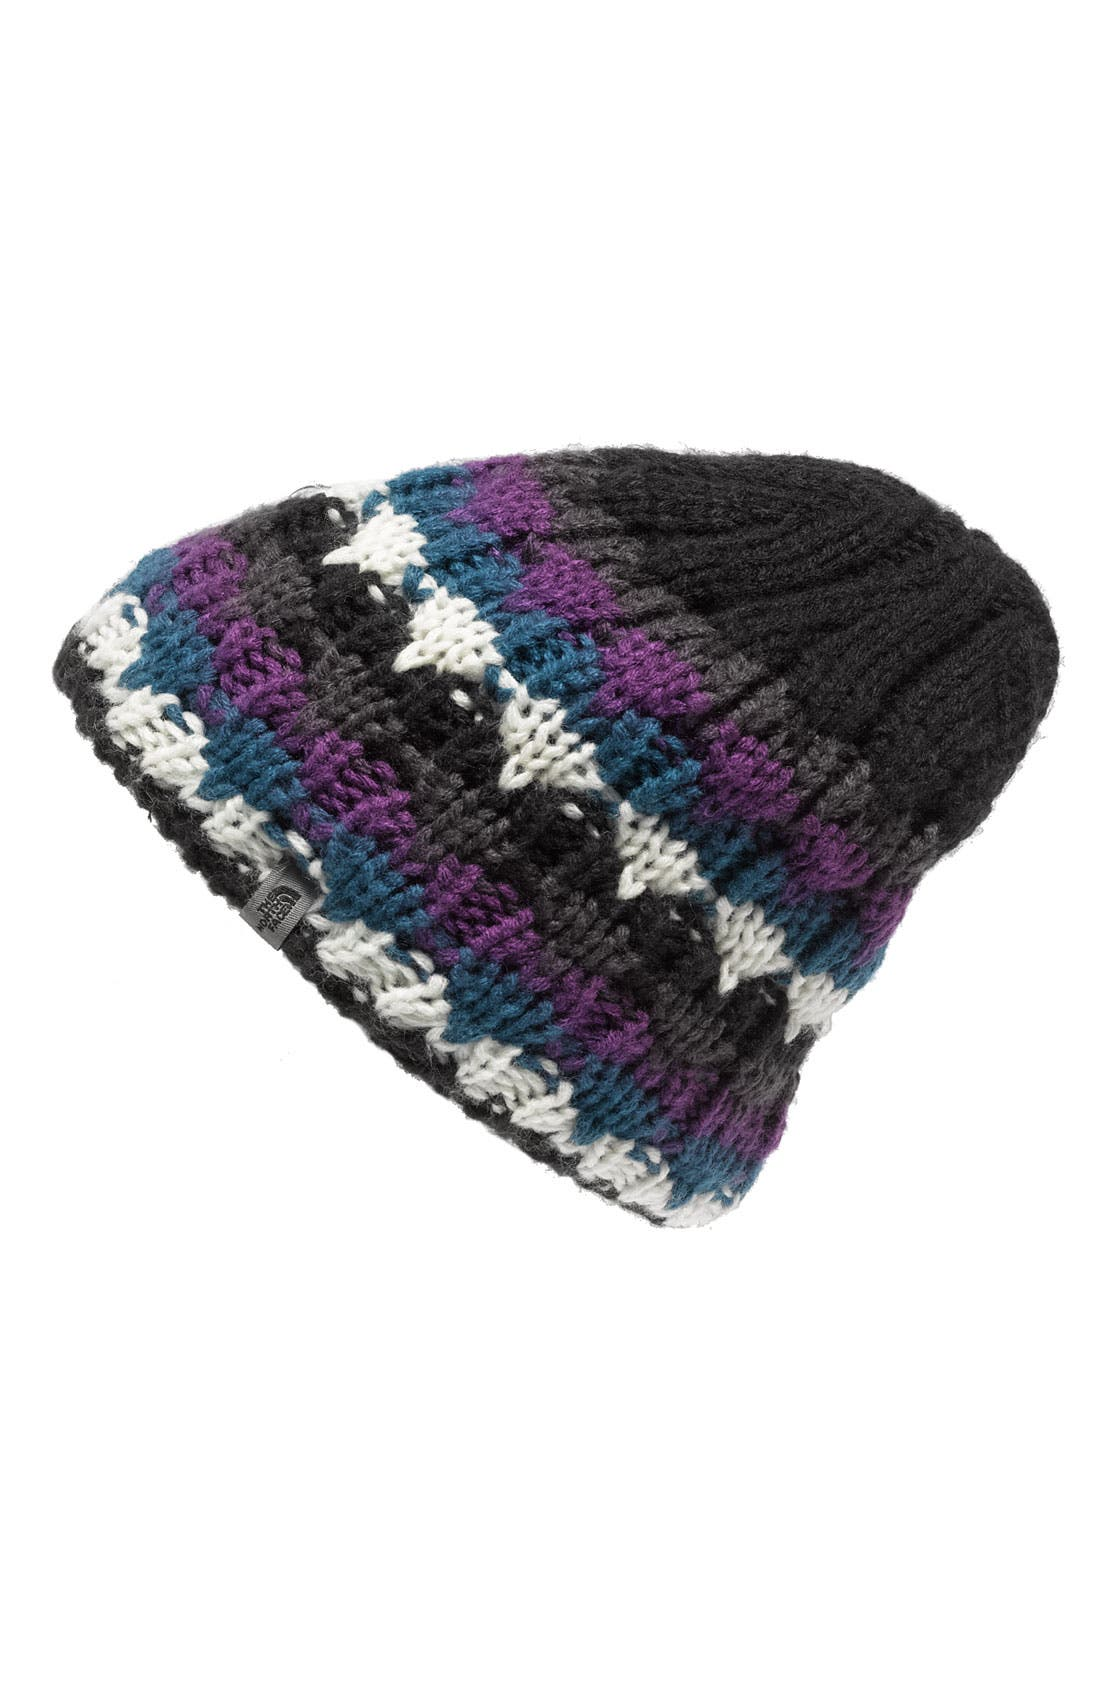 Alternate Image 1 Selected - The North Face 'Lizzy Bizzy' Beanie (Women)